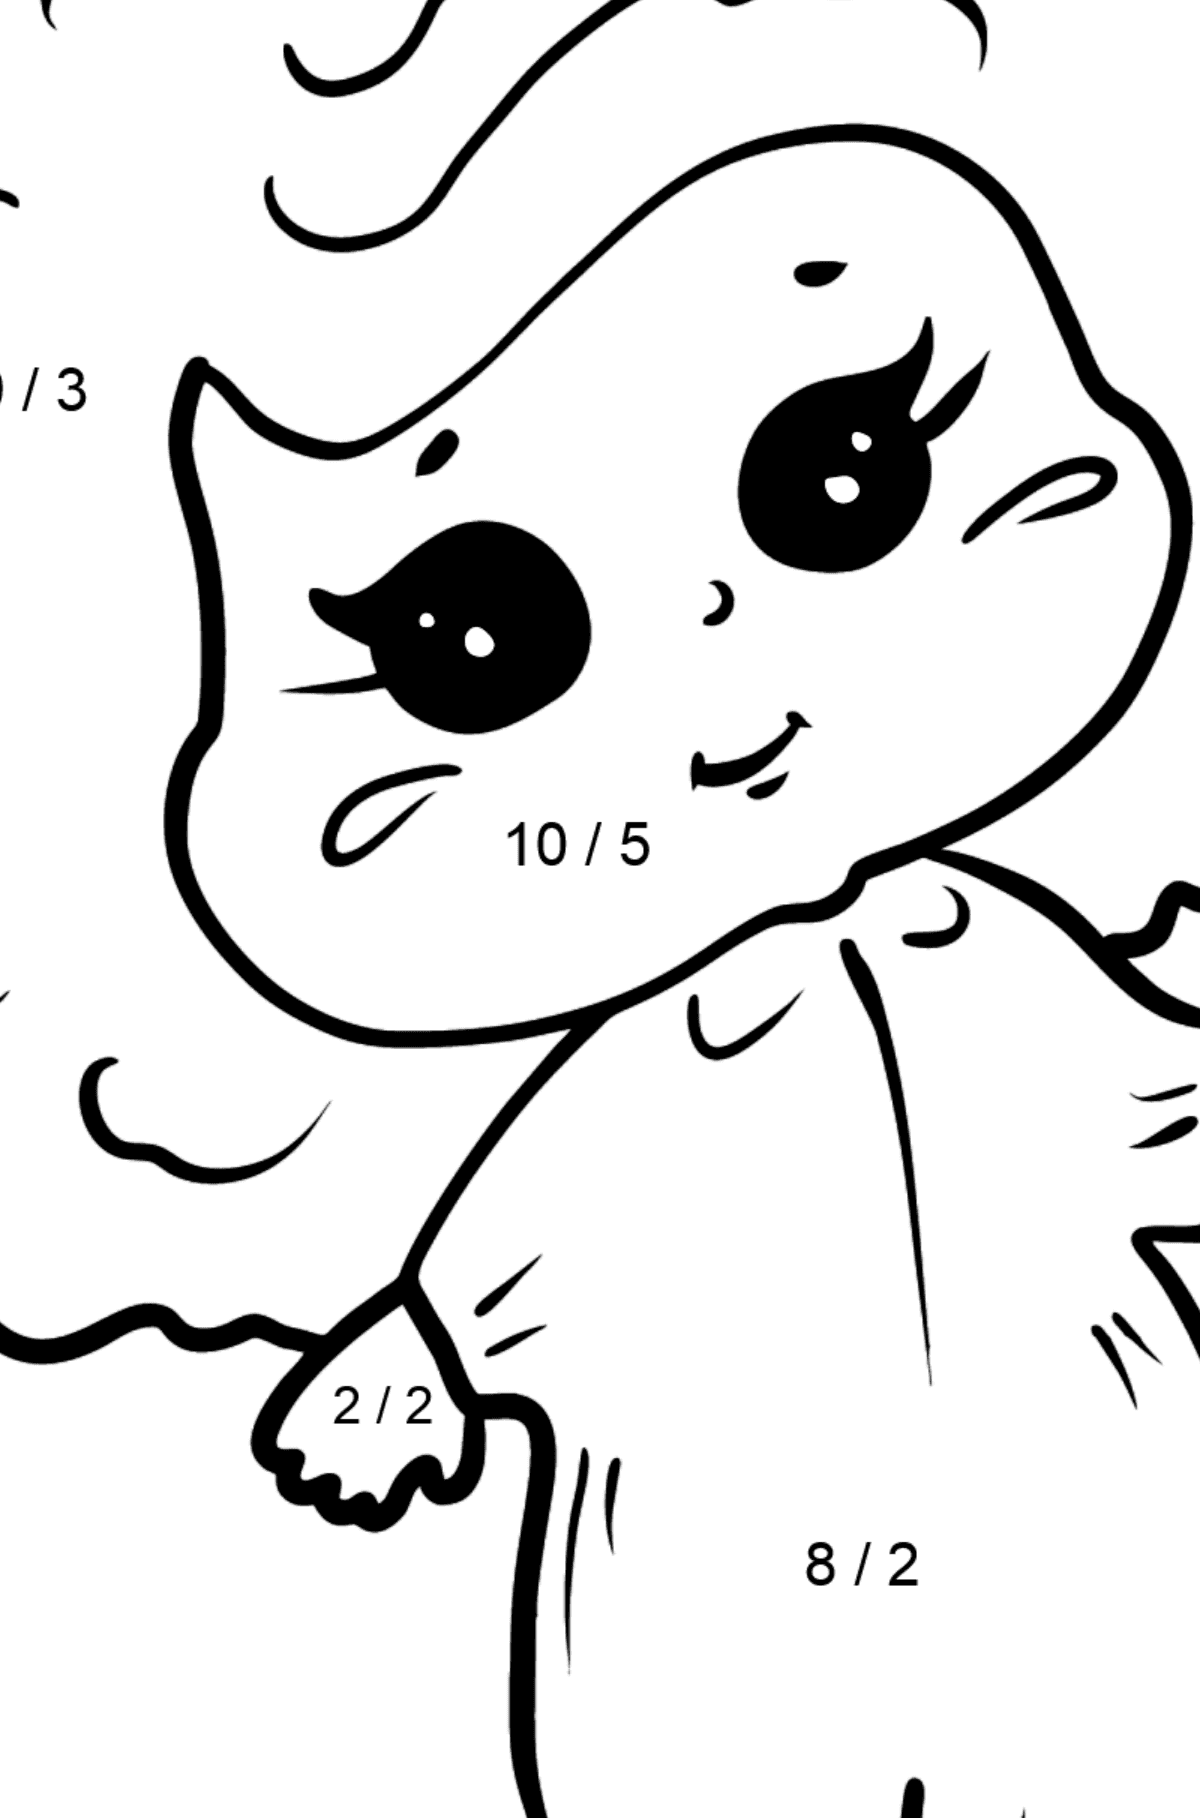 Girl and Ice Cream coloring page - Math Coloring - Division for Kids